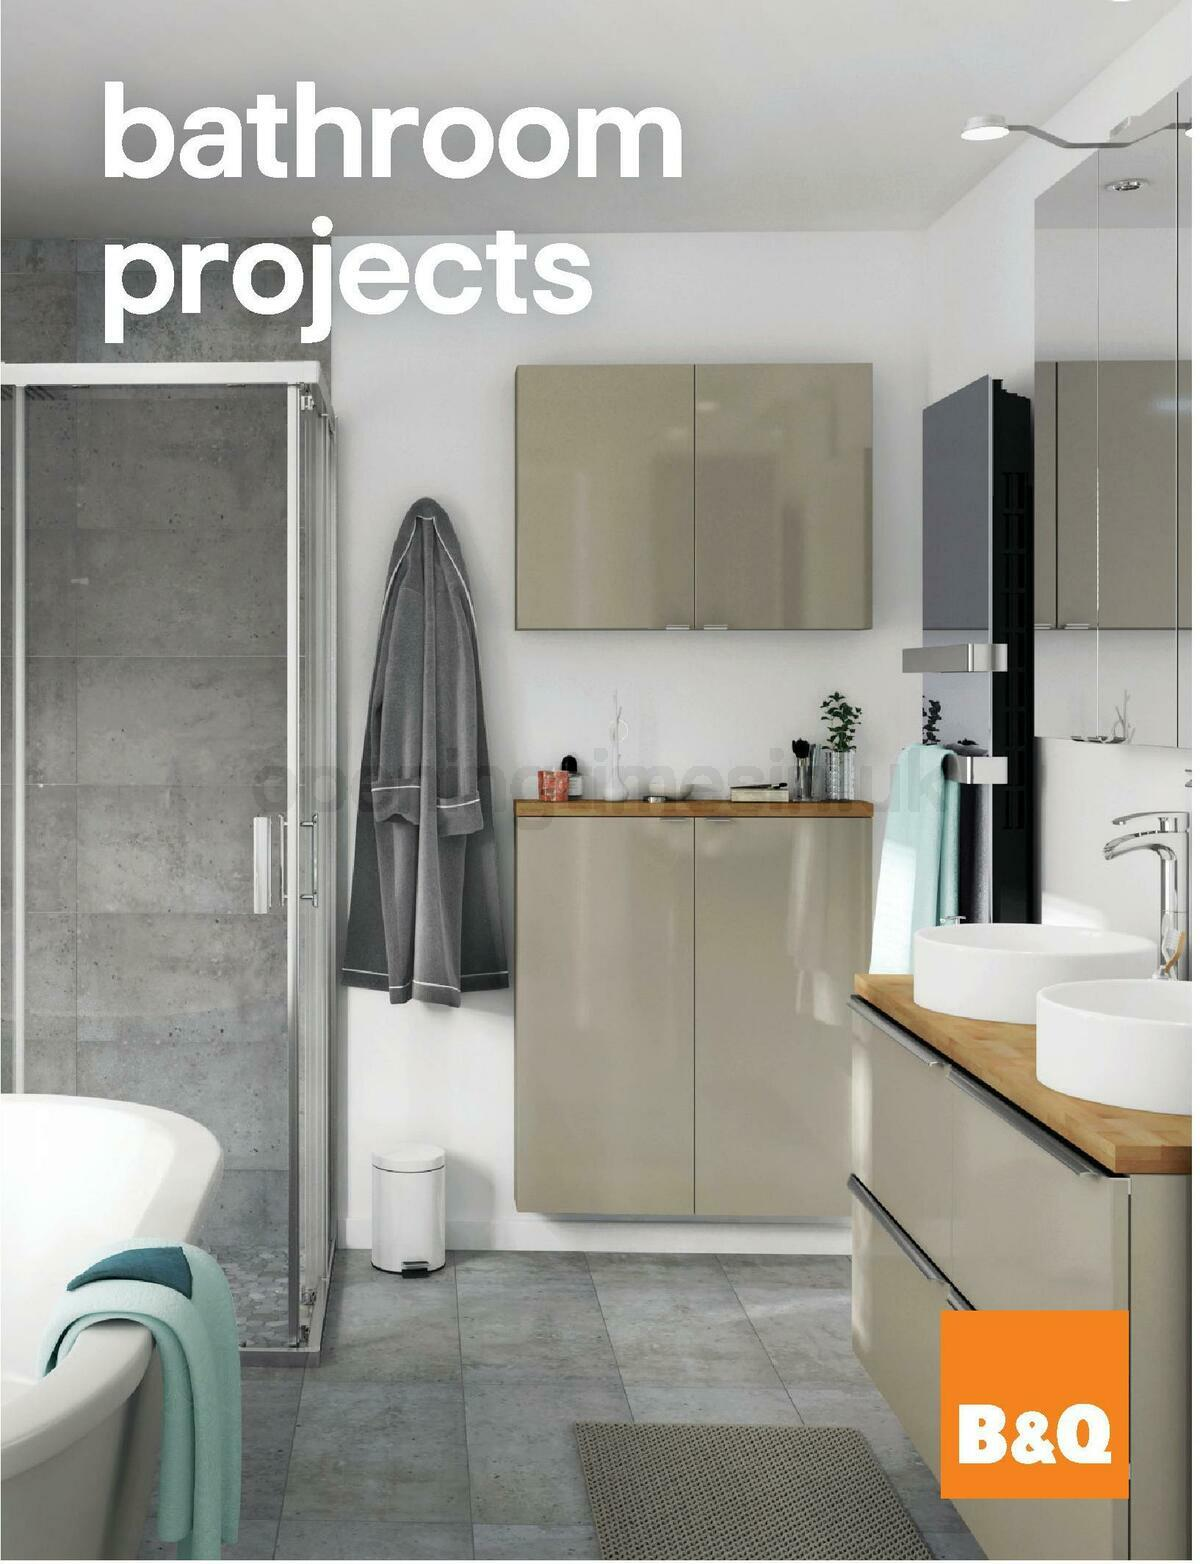 B&Q Bathroom Projects Offers from February 7